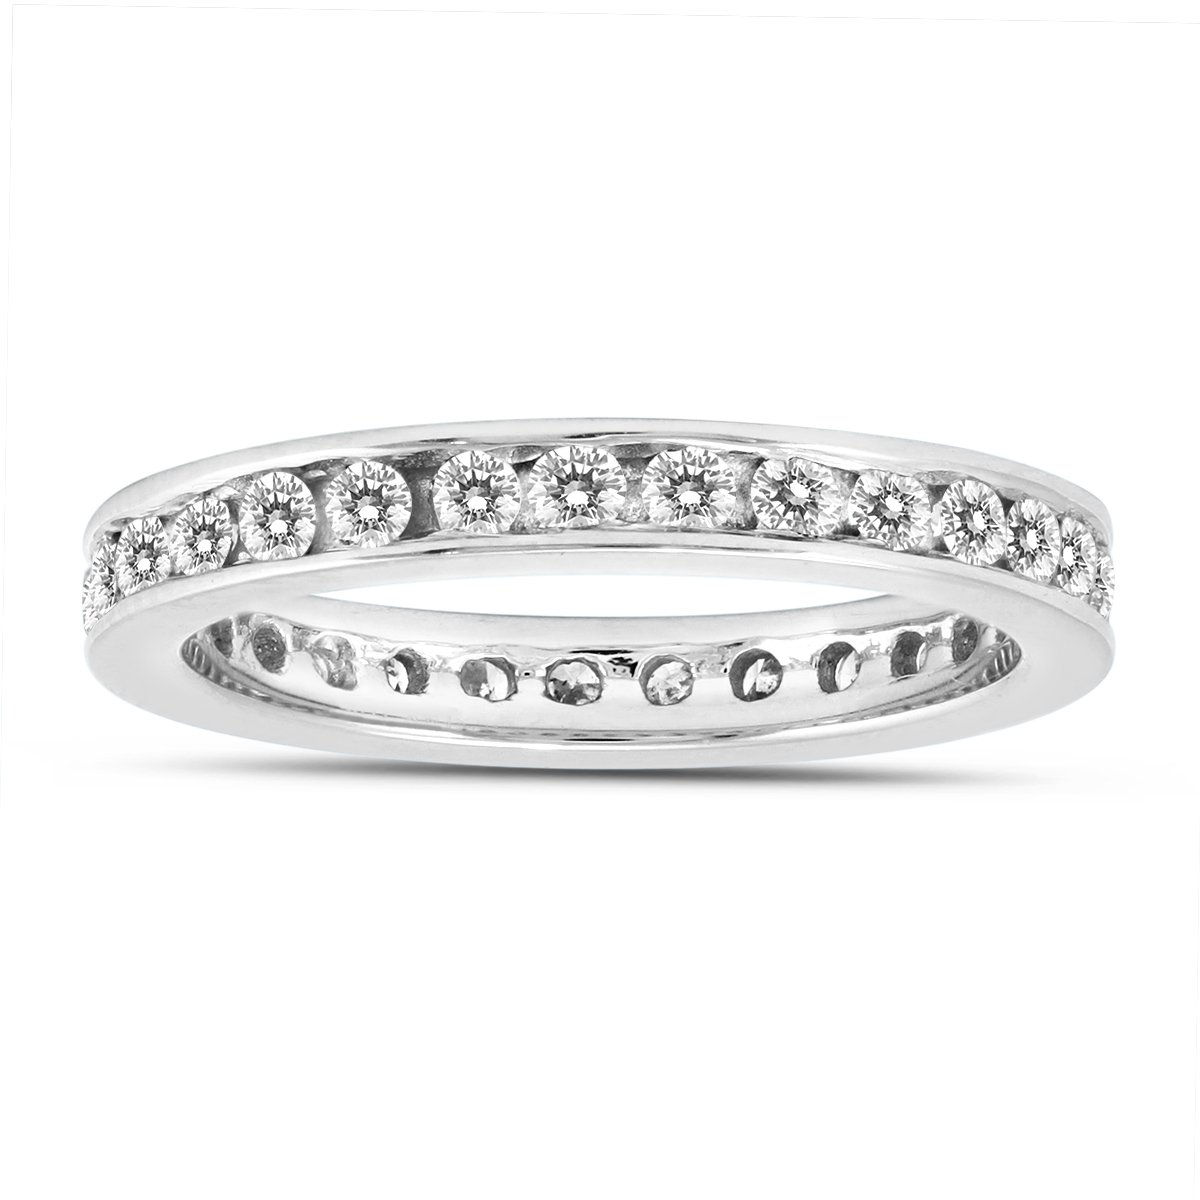 AGS Certified 1 Carat TW Channel Set Eternity Diamond Band in 10K White Gold